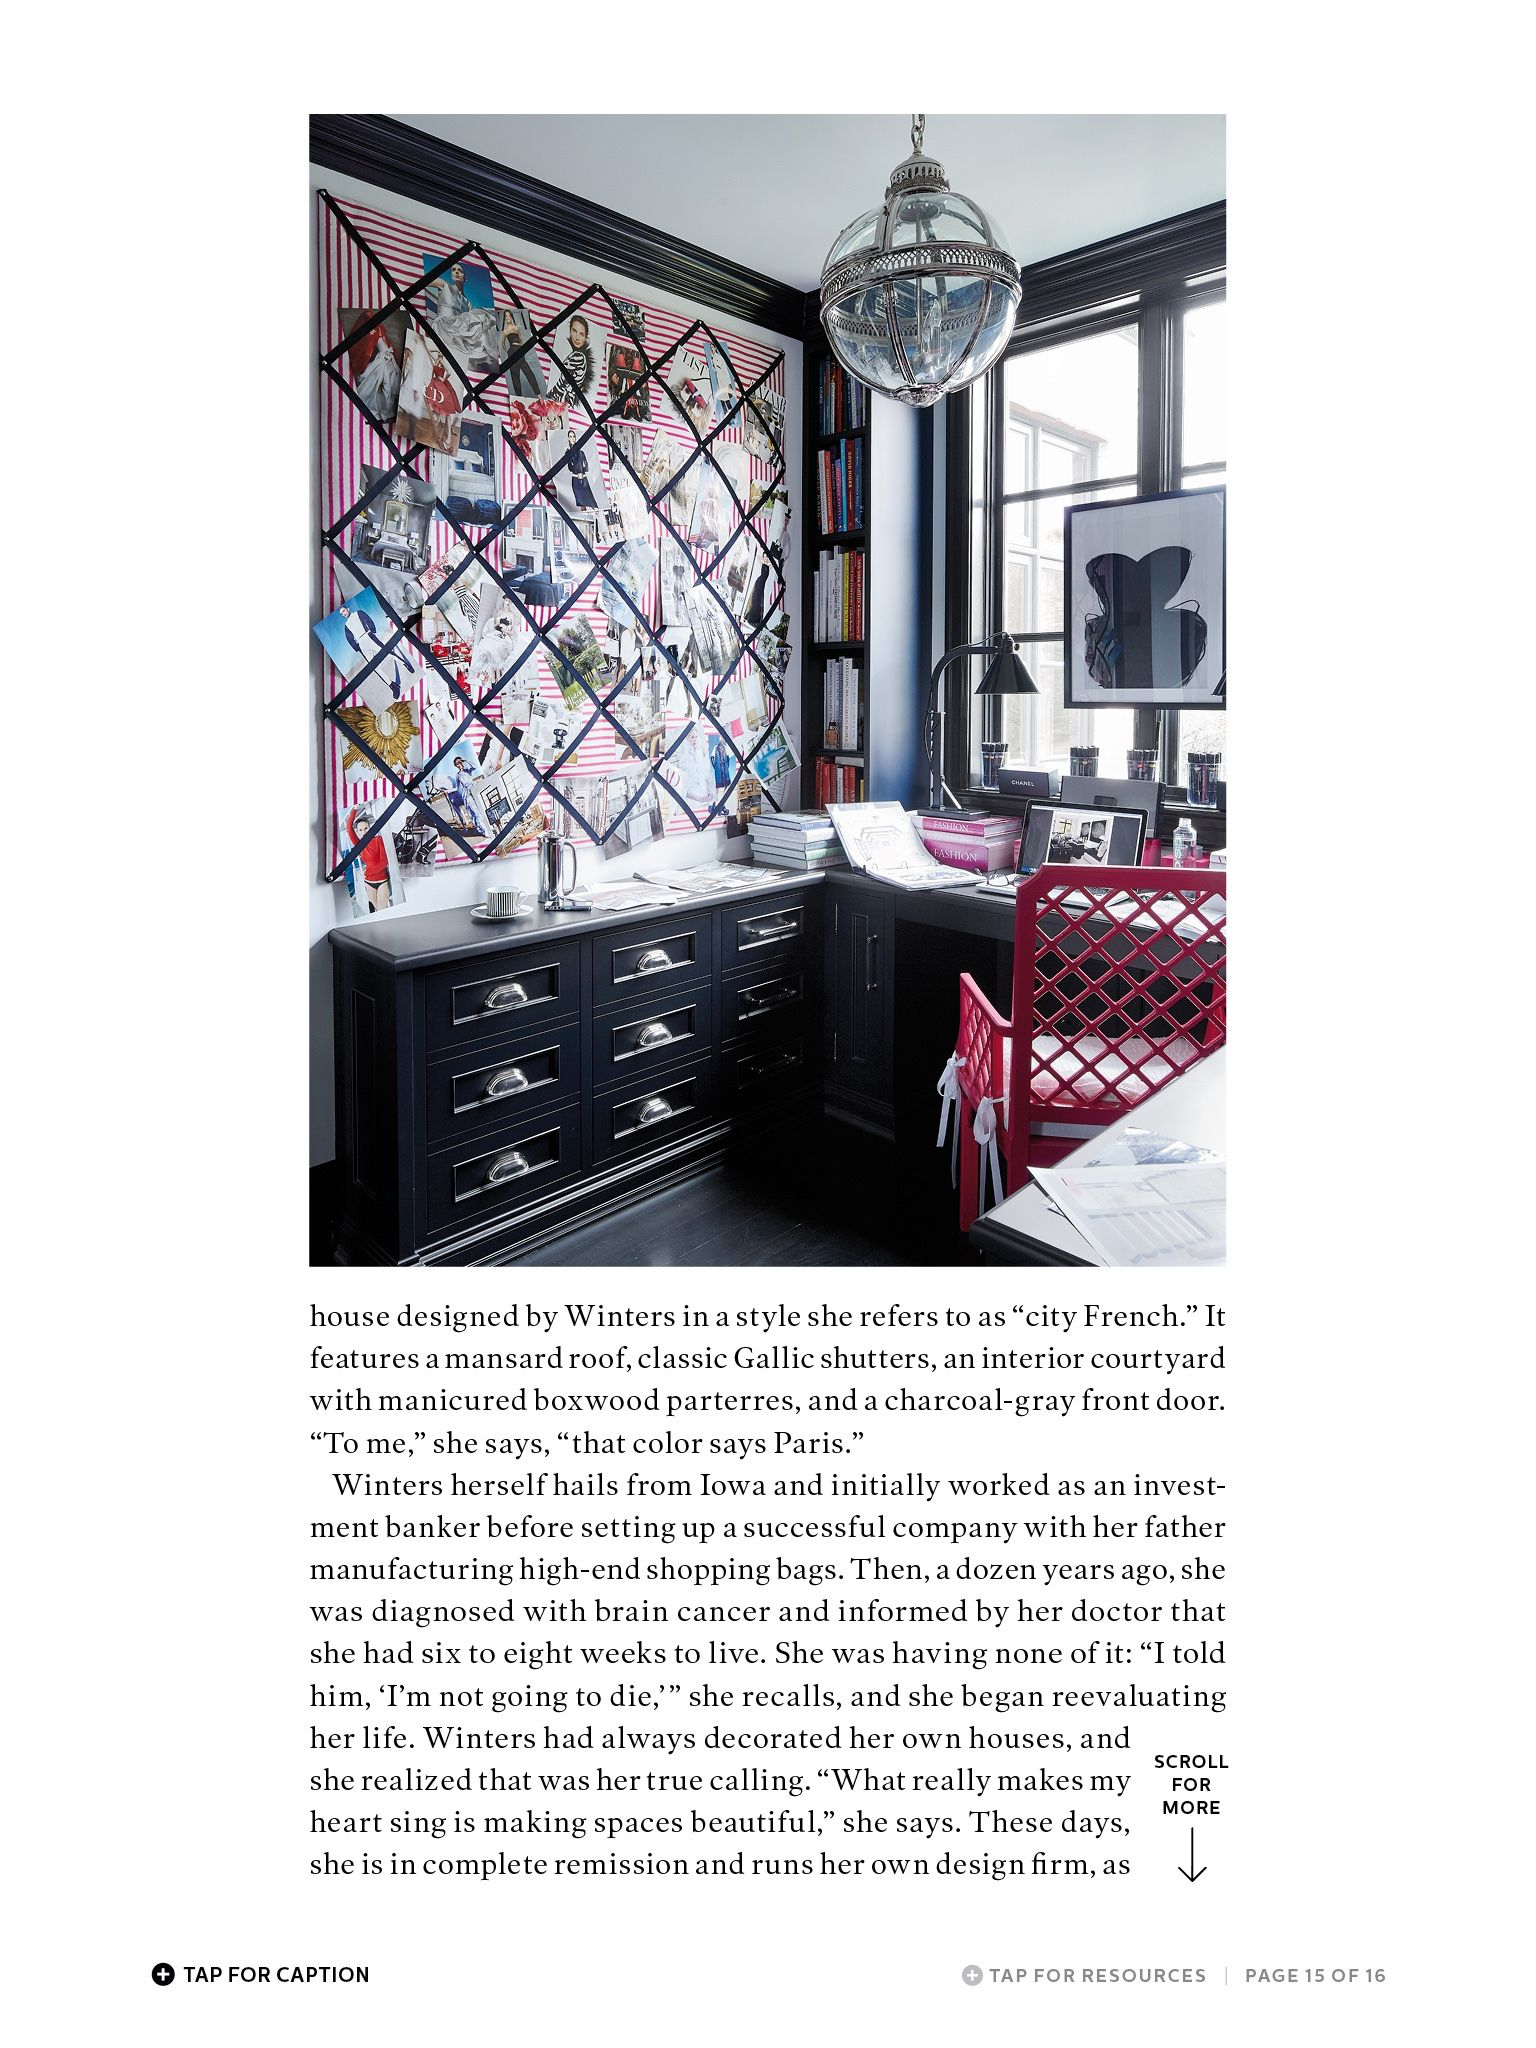 I saw this in the May 2015 issue of @ELLEDECOR.   http://bit.ly/1pTydyx